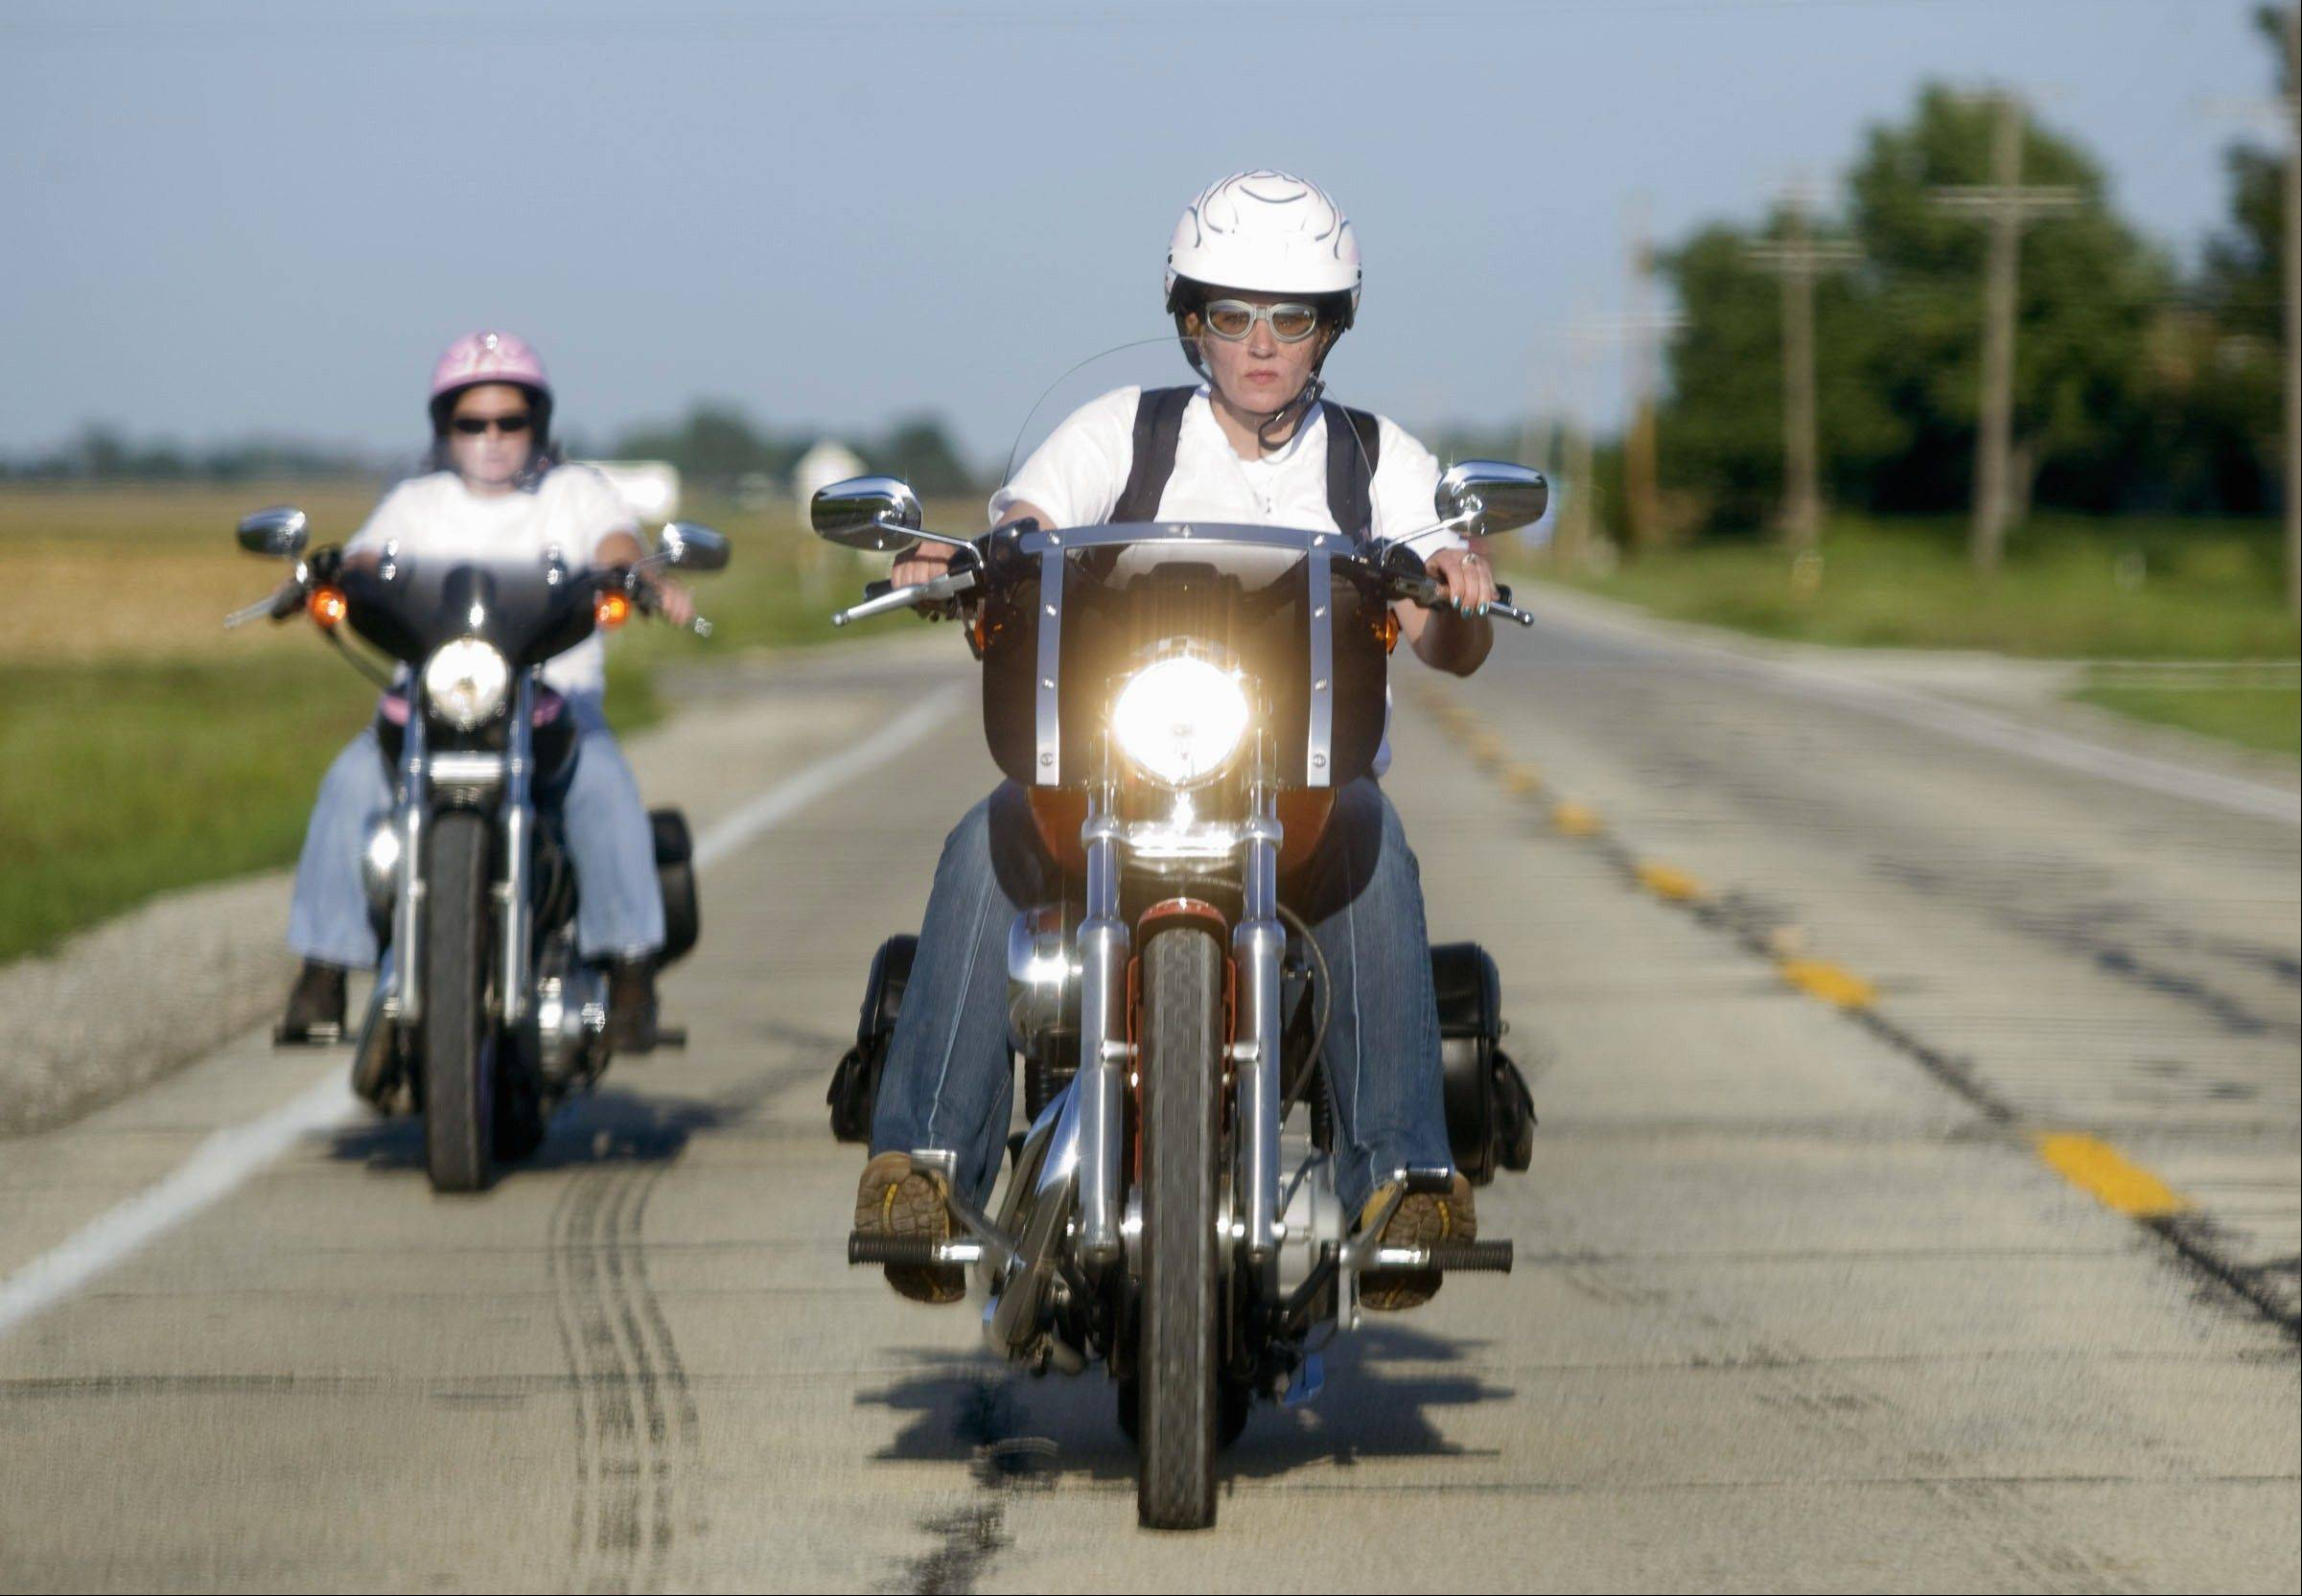 Tracie Cook, right, of Petersburg, Ill., and Tracy Cooley, of Springfield, Ill., head down Highway 36 on their motorcycles outside Niantic, Ill.